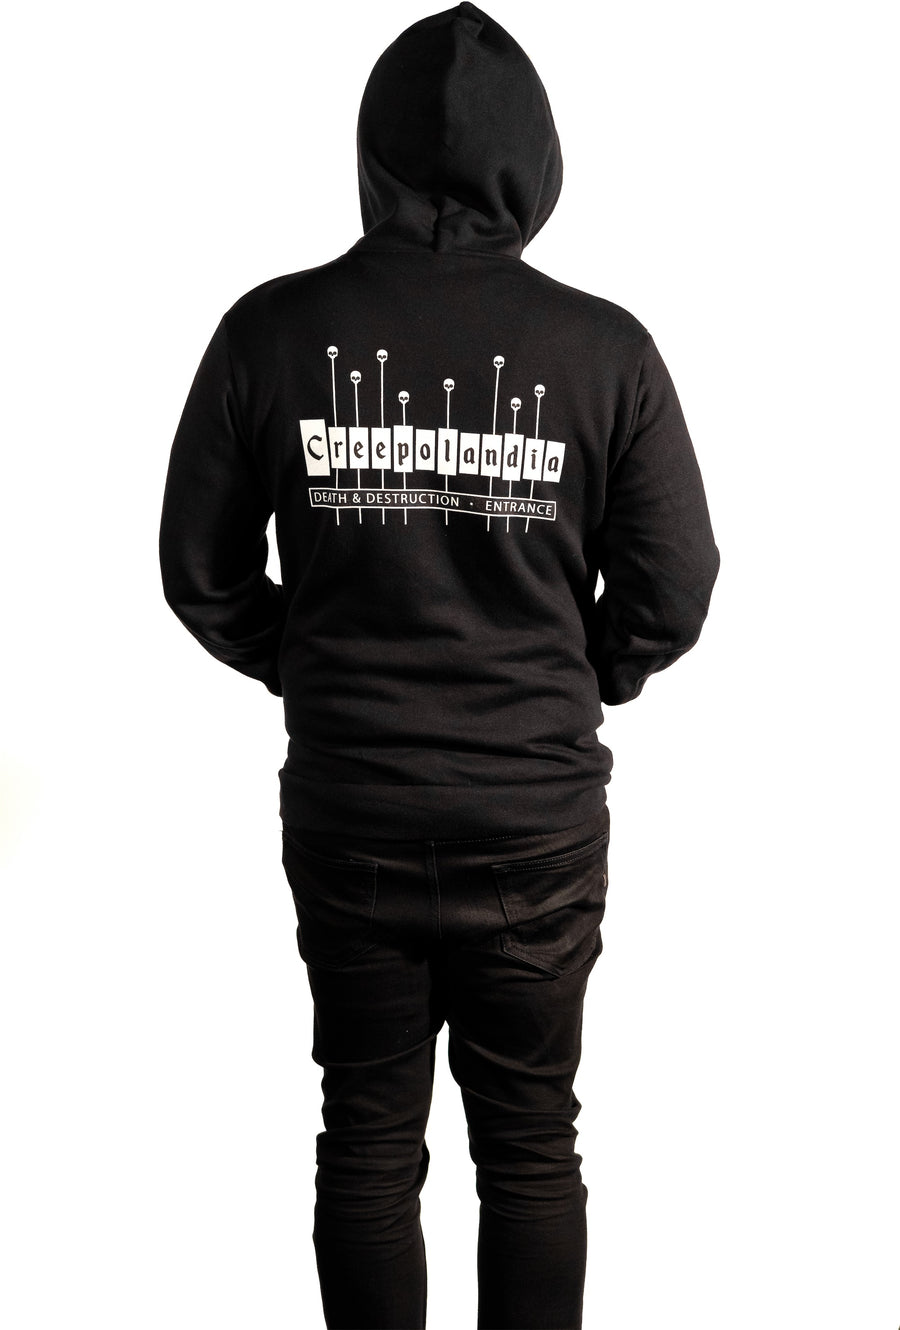 Creepolandia Entrance Zip-Up Hoodie